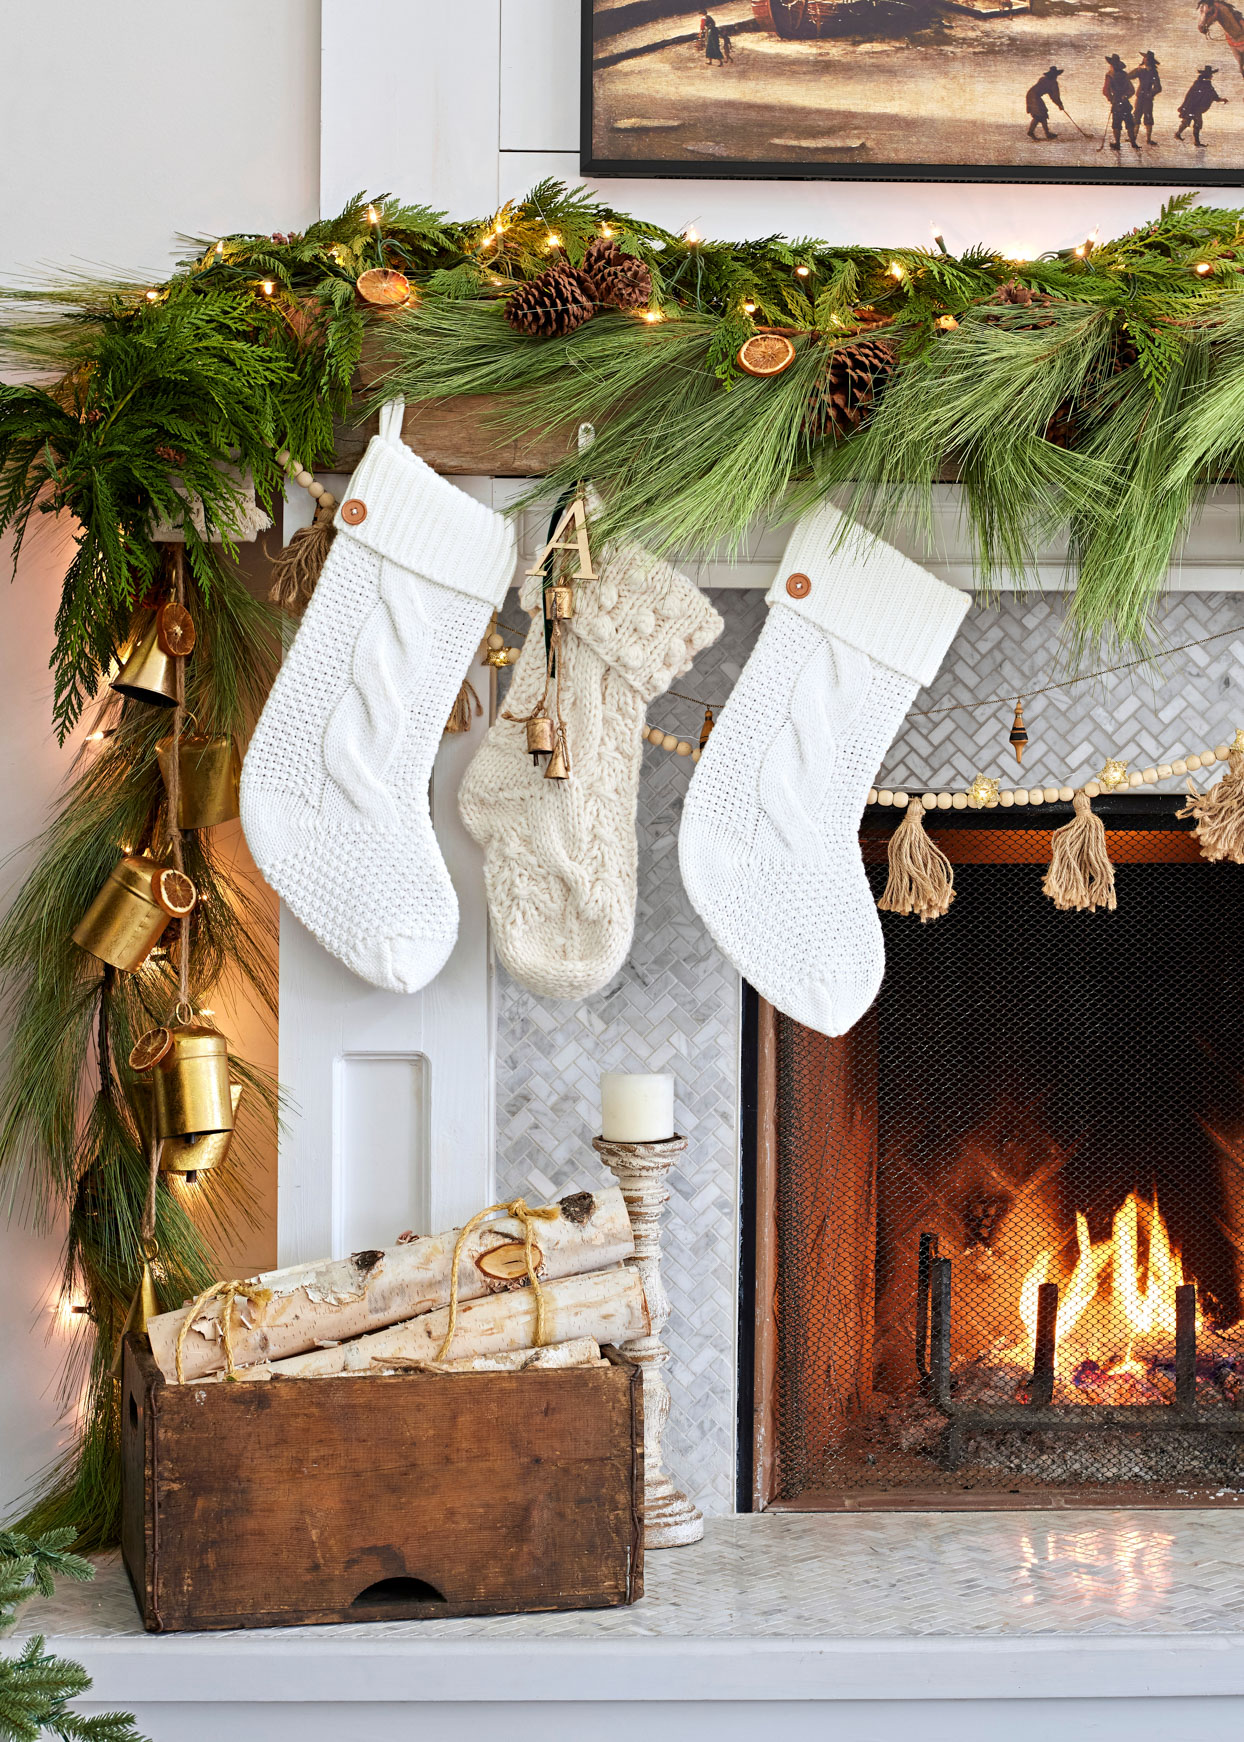 stockings hung on mantle over fireplace